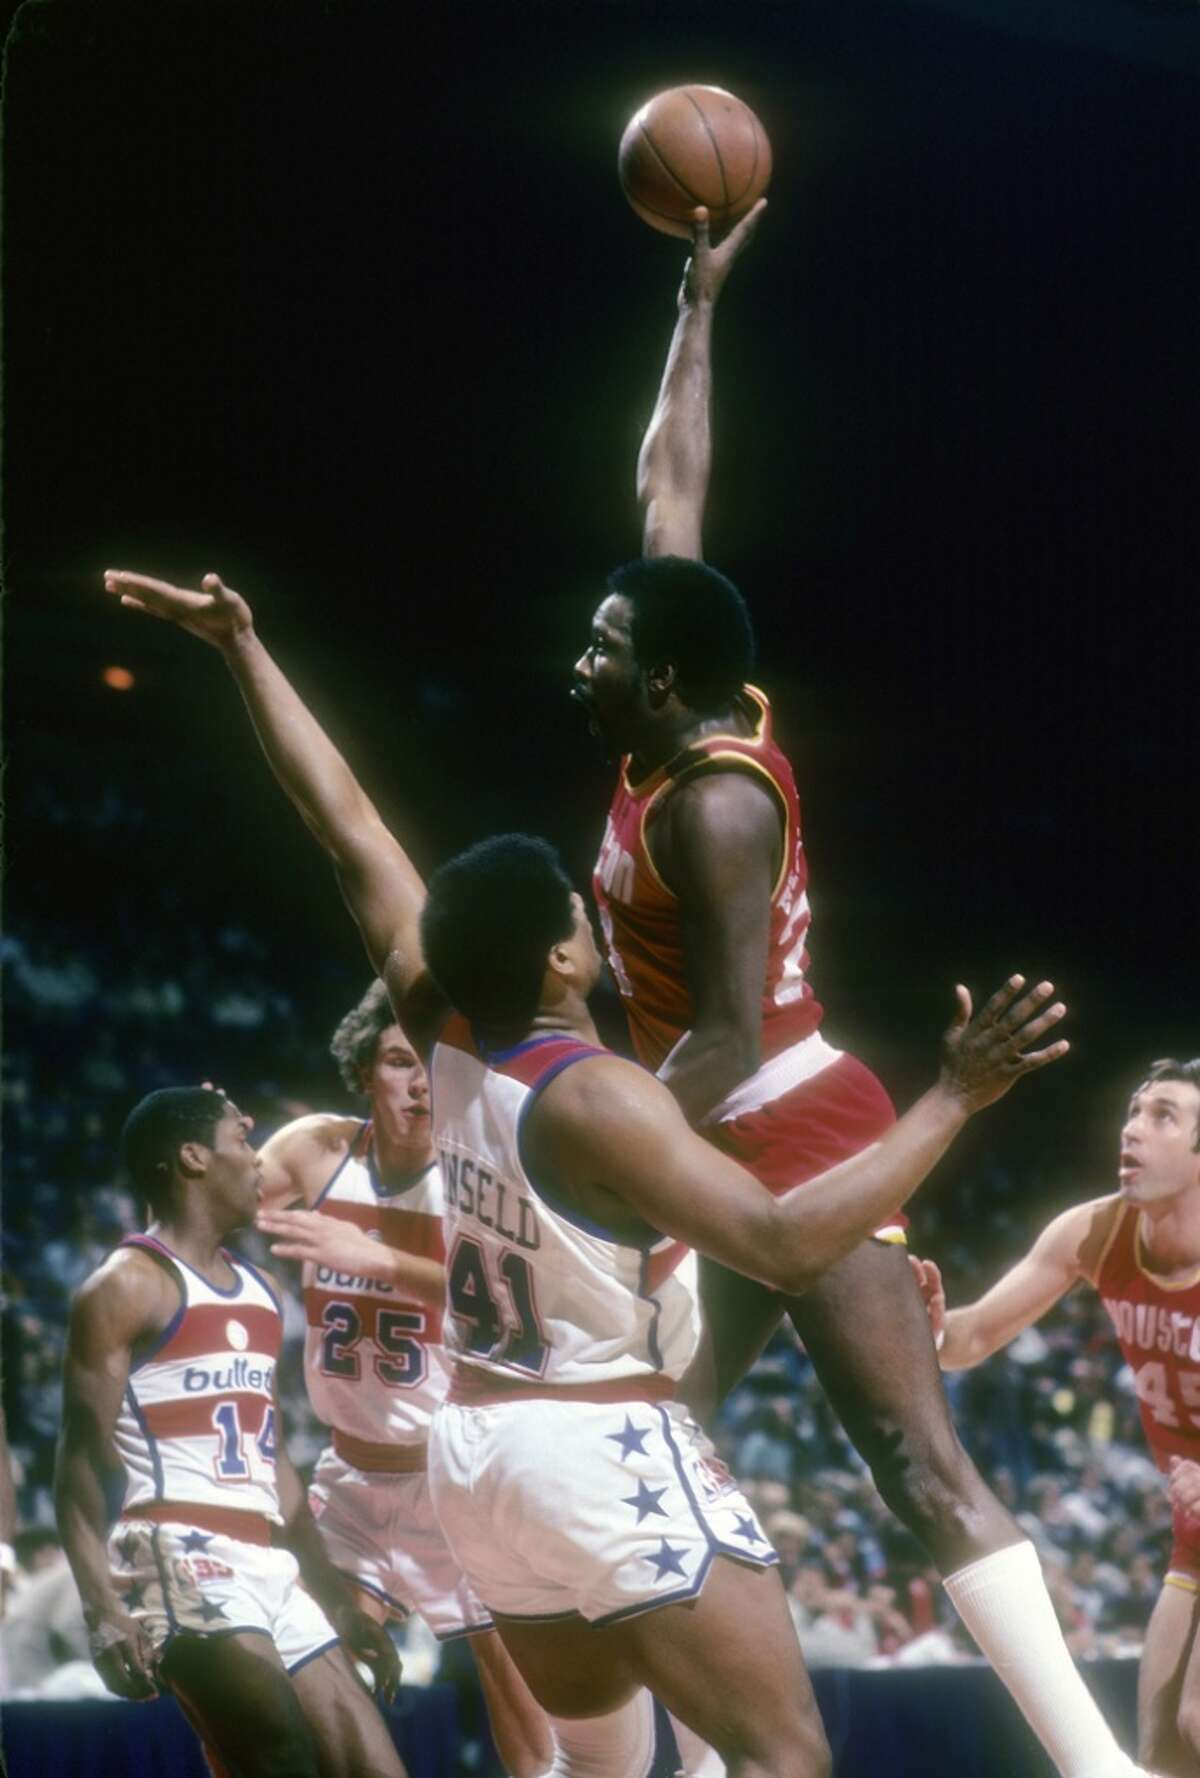 Moses Malone #24 of the Houston Rockets shoots over Wes Unseld #41 of the Washington Bullets during an NBA basketball game circa 1977 at the Baltimore Civic Center in Baltimore, Maryland. Malone played for the Rockets from 1976-82. (Photo by Focus on Sport/Getty Images)